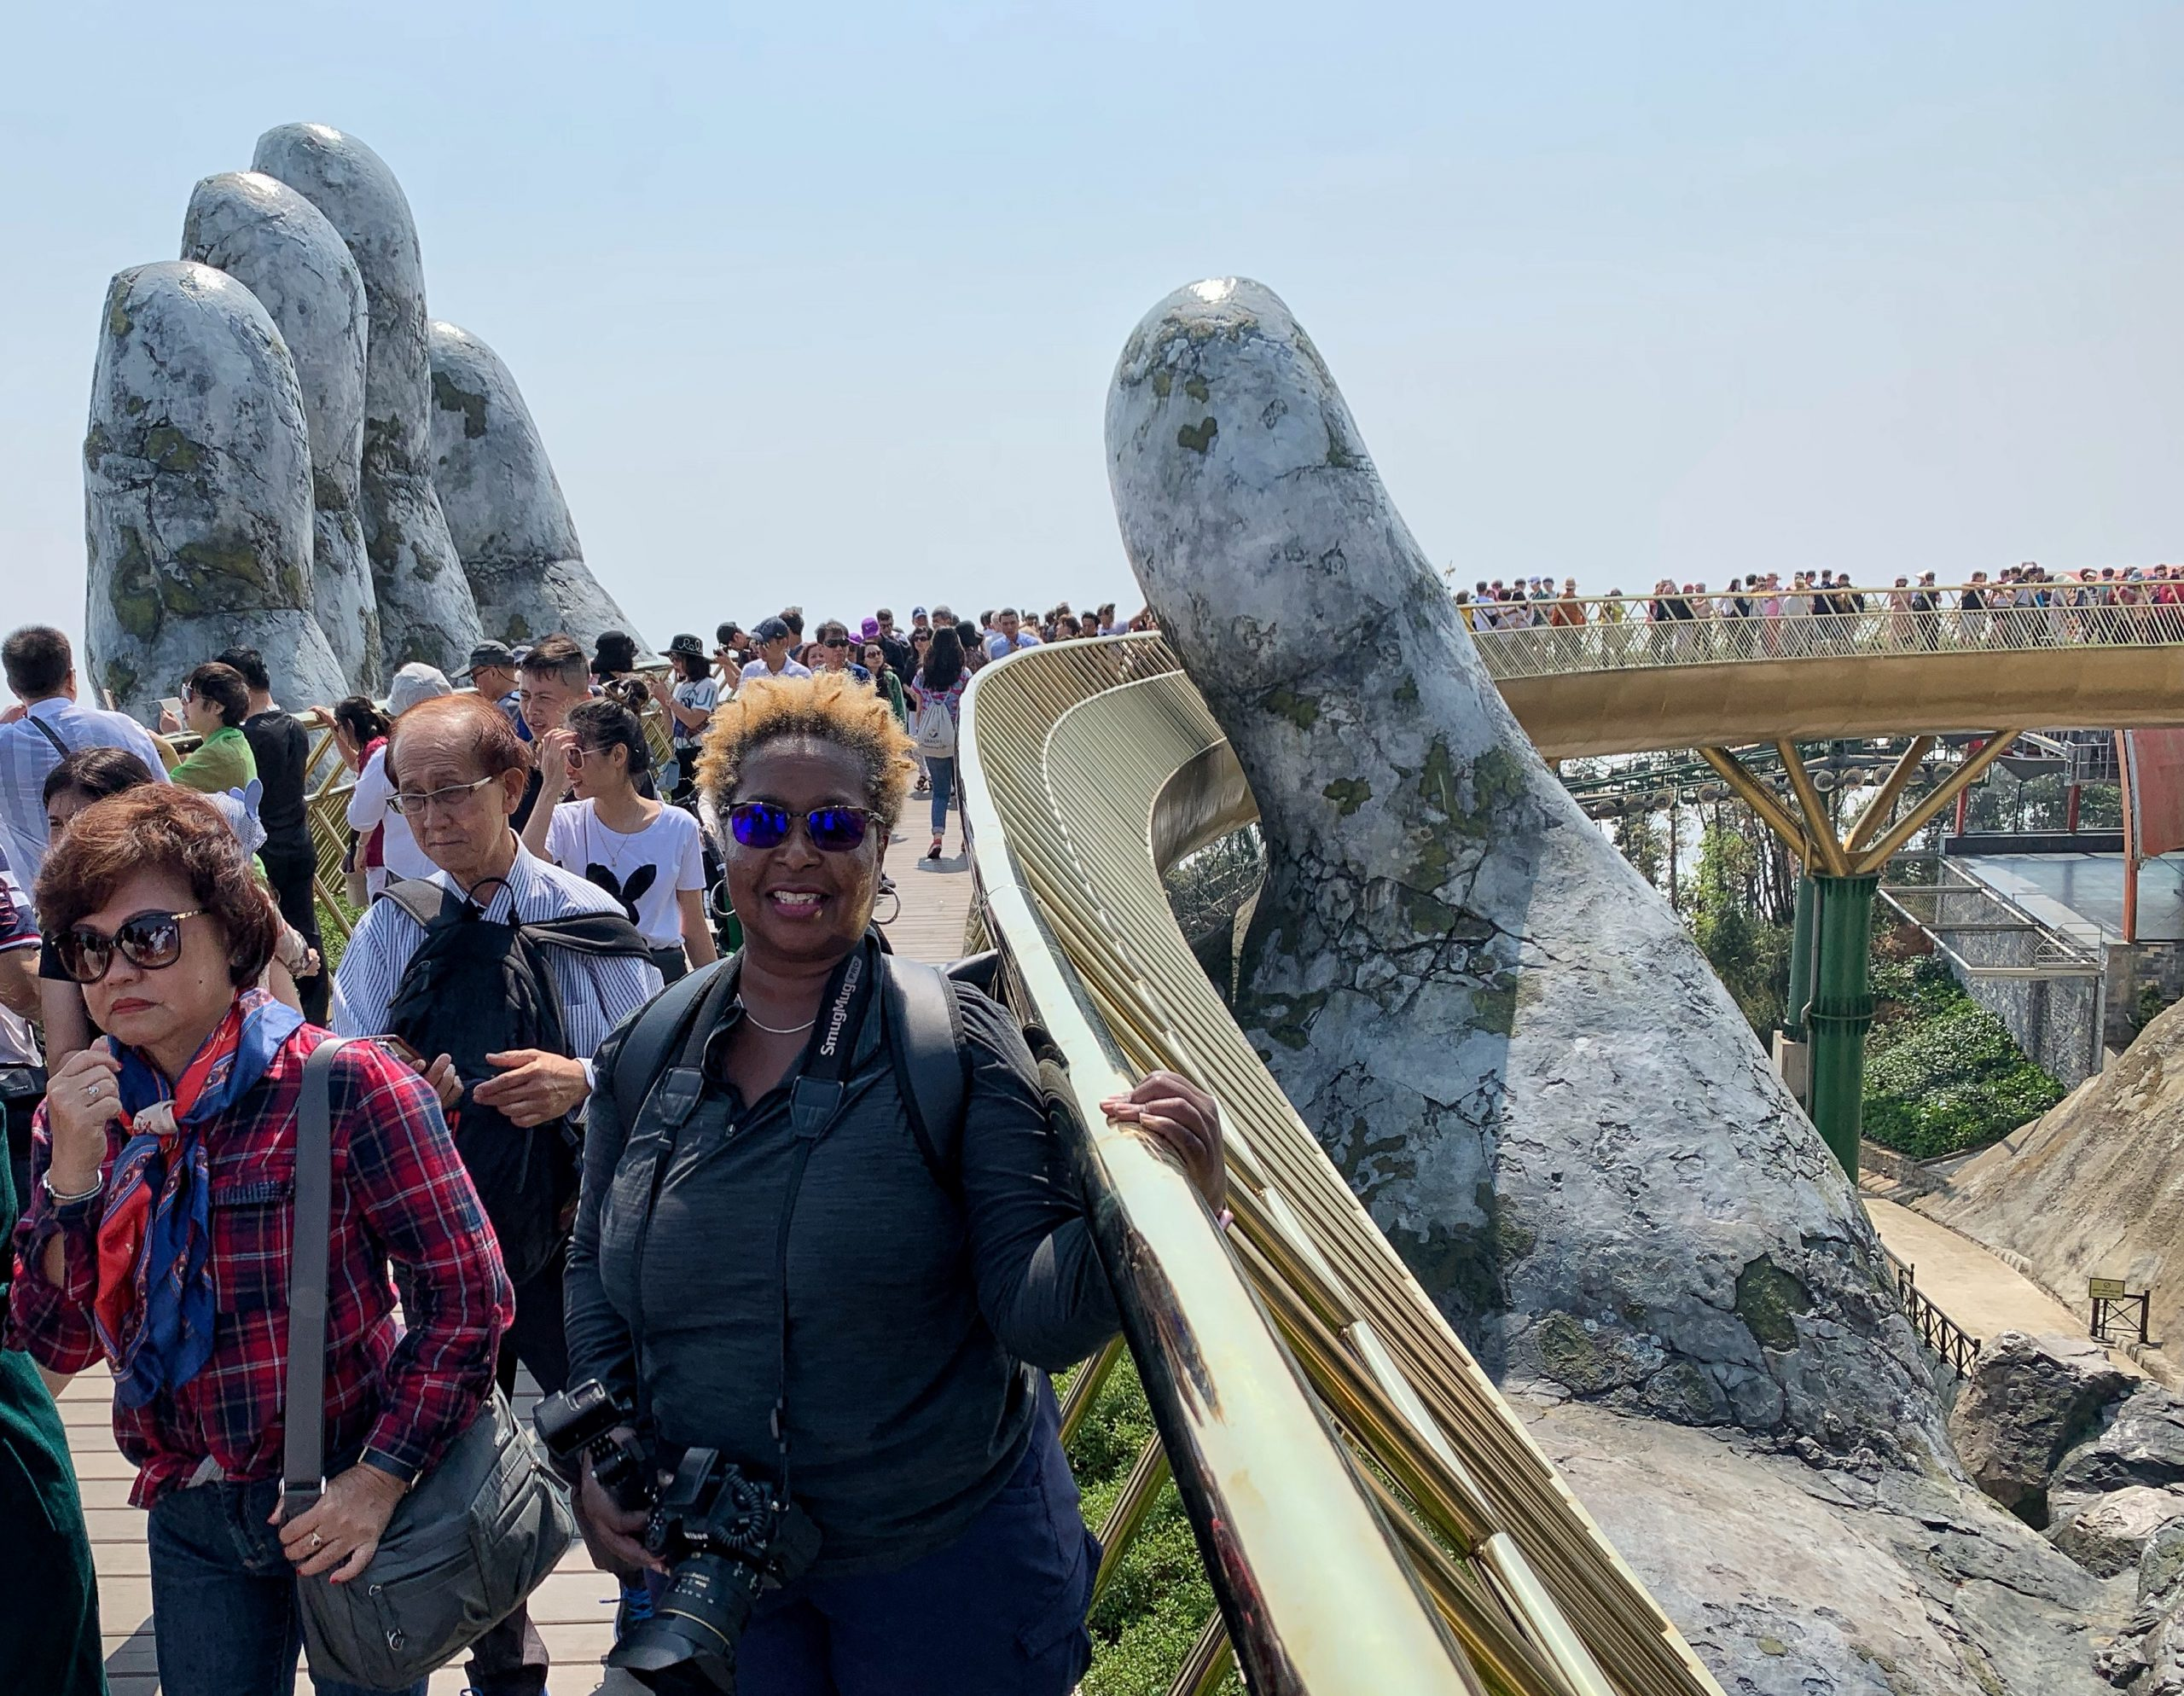 """Danielle Lewis, owner of SelfishMe Travel LLC, on the """"Hands of God"""" Golden Bridge at Sunworld's Ba Na Hills in Vietnam - image taken with an iPhone XS"""